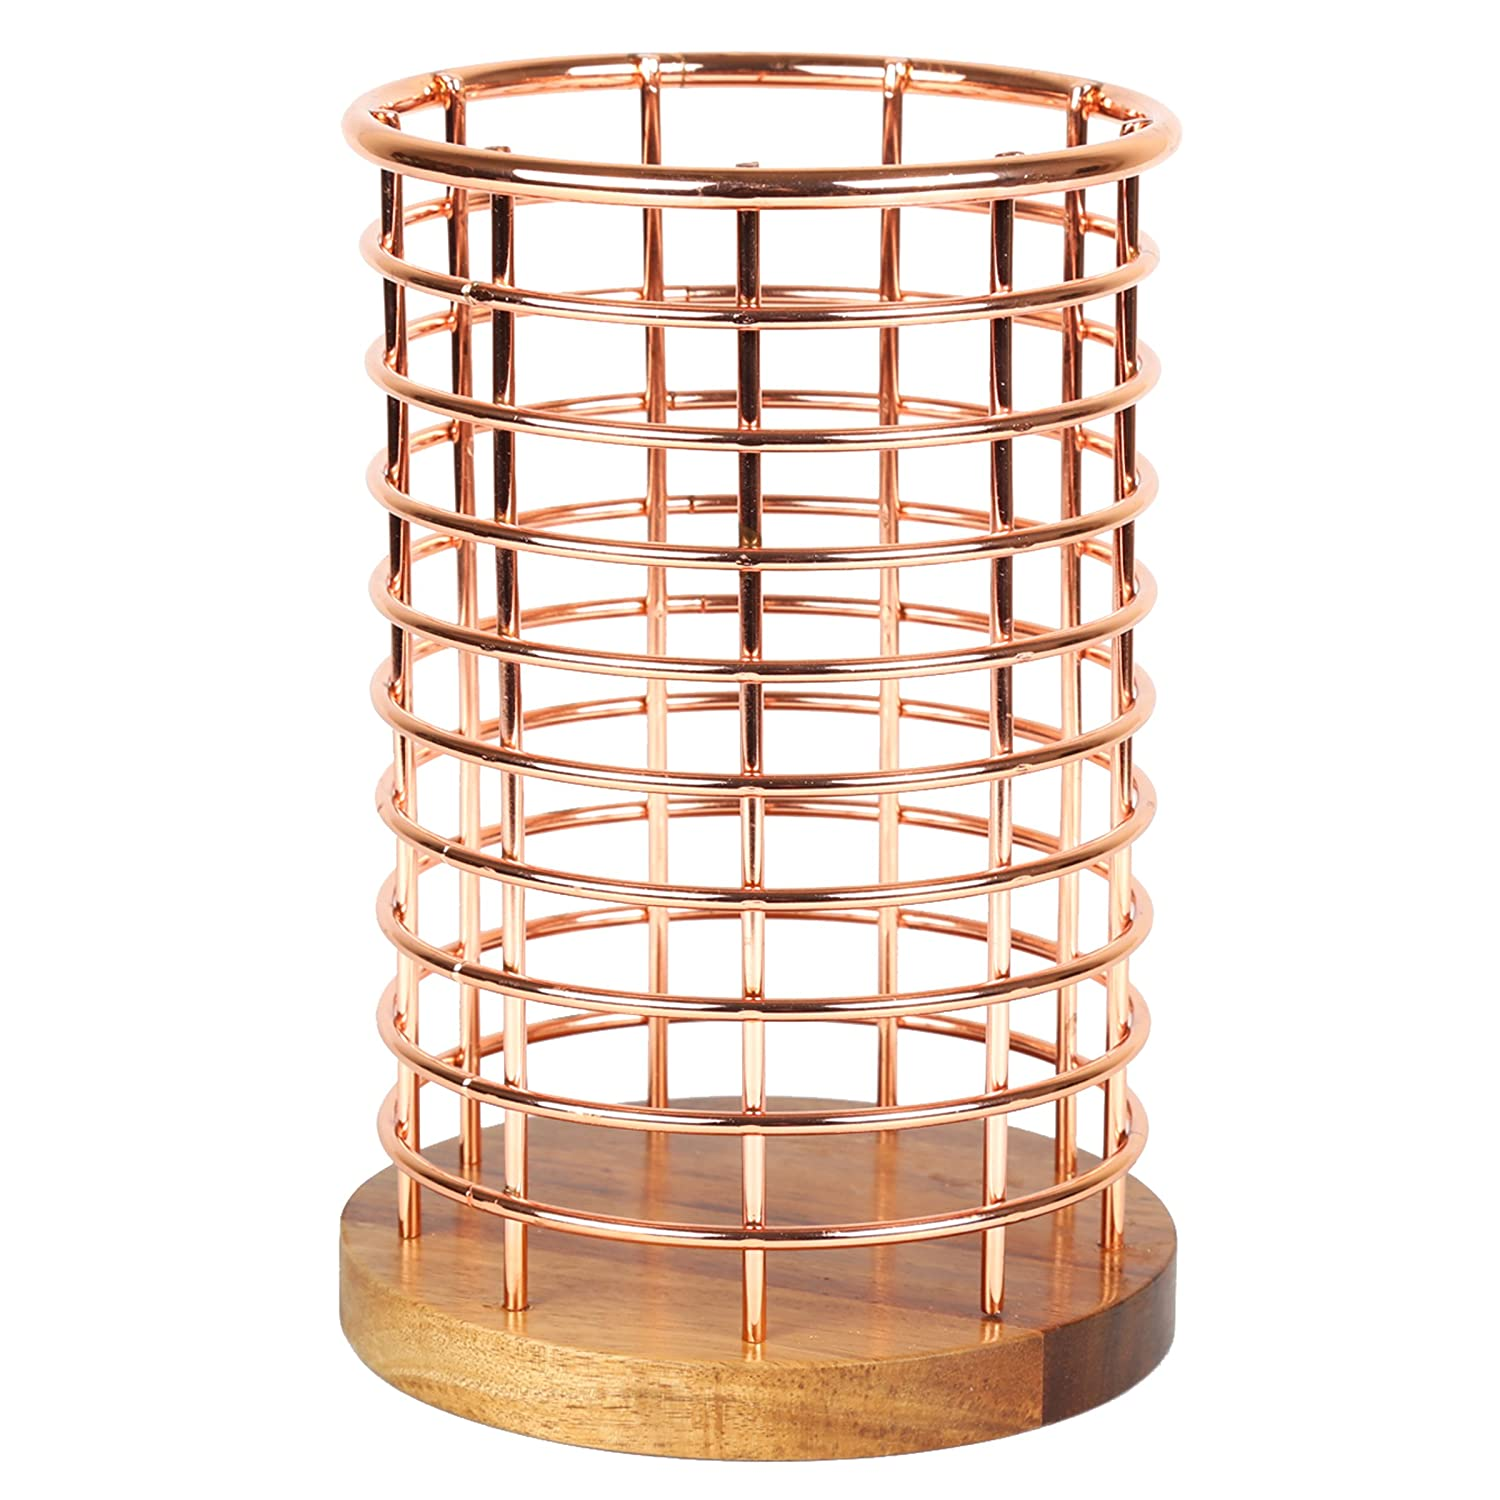 Creative Home Deluxe Acacia Wood and Wire Fruit Basket with Copper Finish, NA 50237